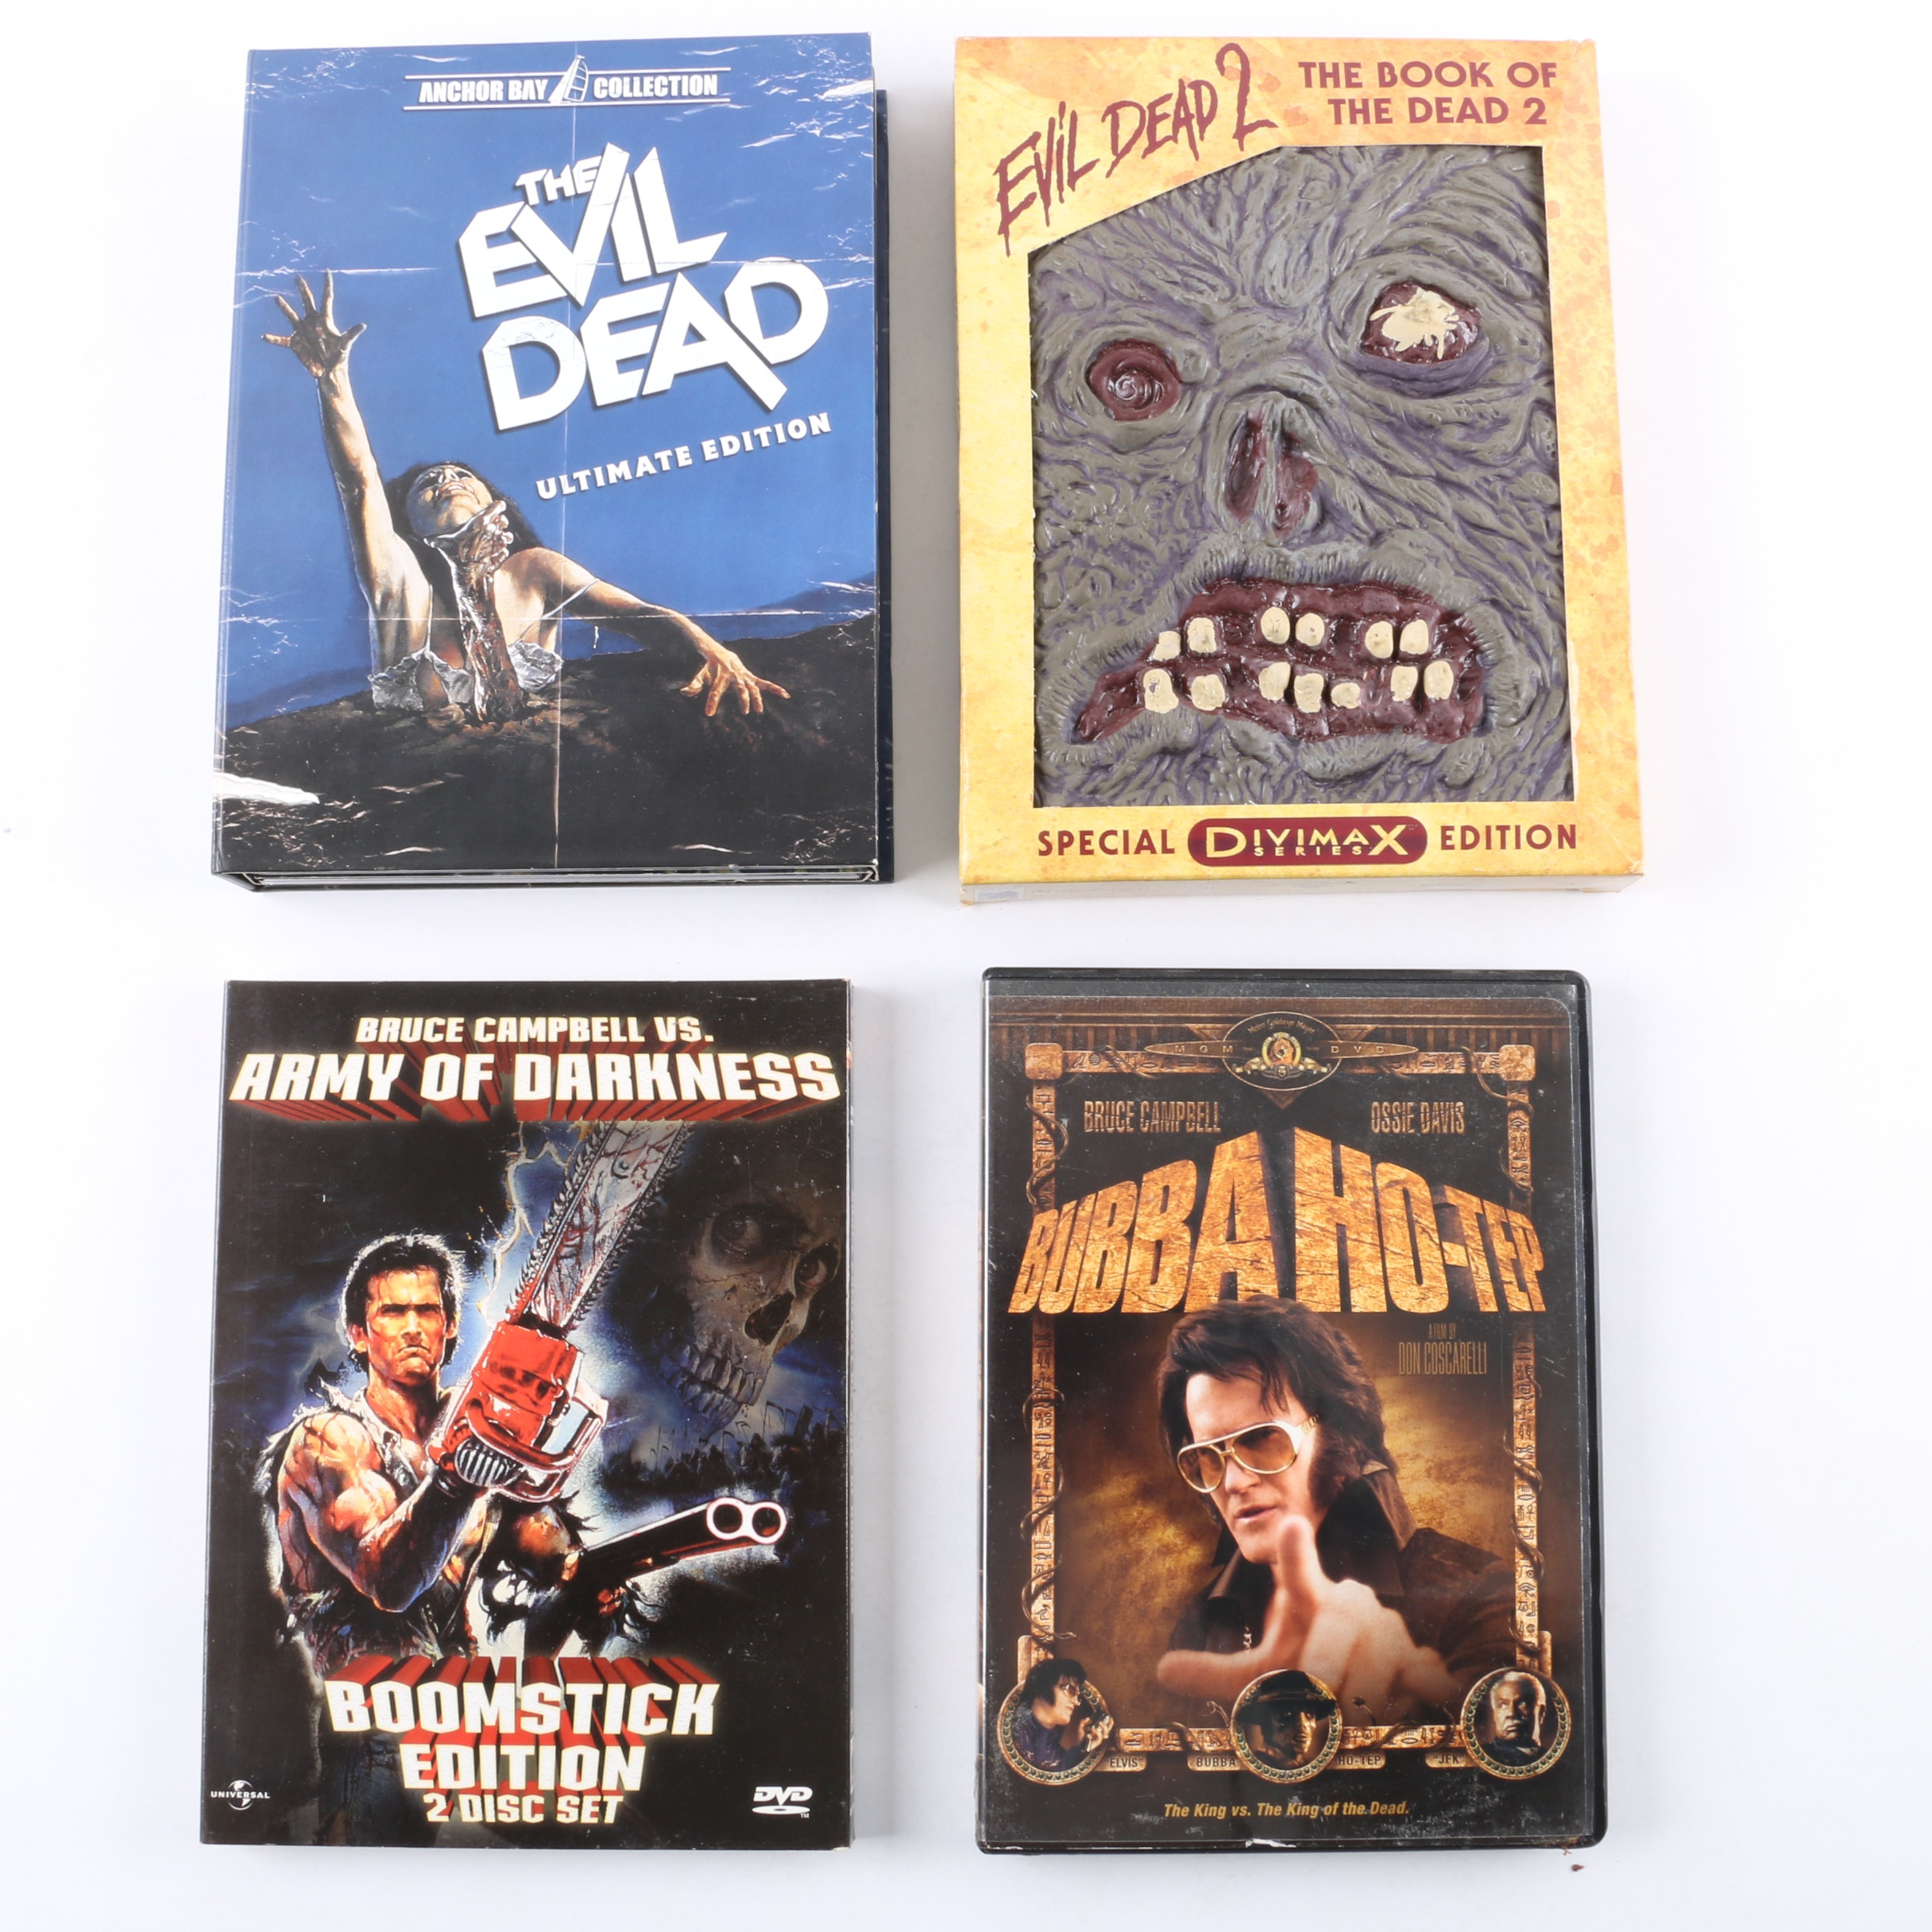 """Bruce Campbell """"Evil Dead"""" Series DVDs Including Ultimate and Divimax Editions"""